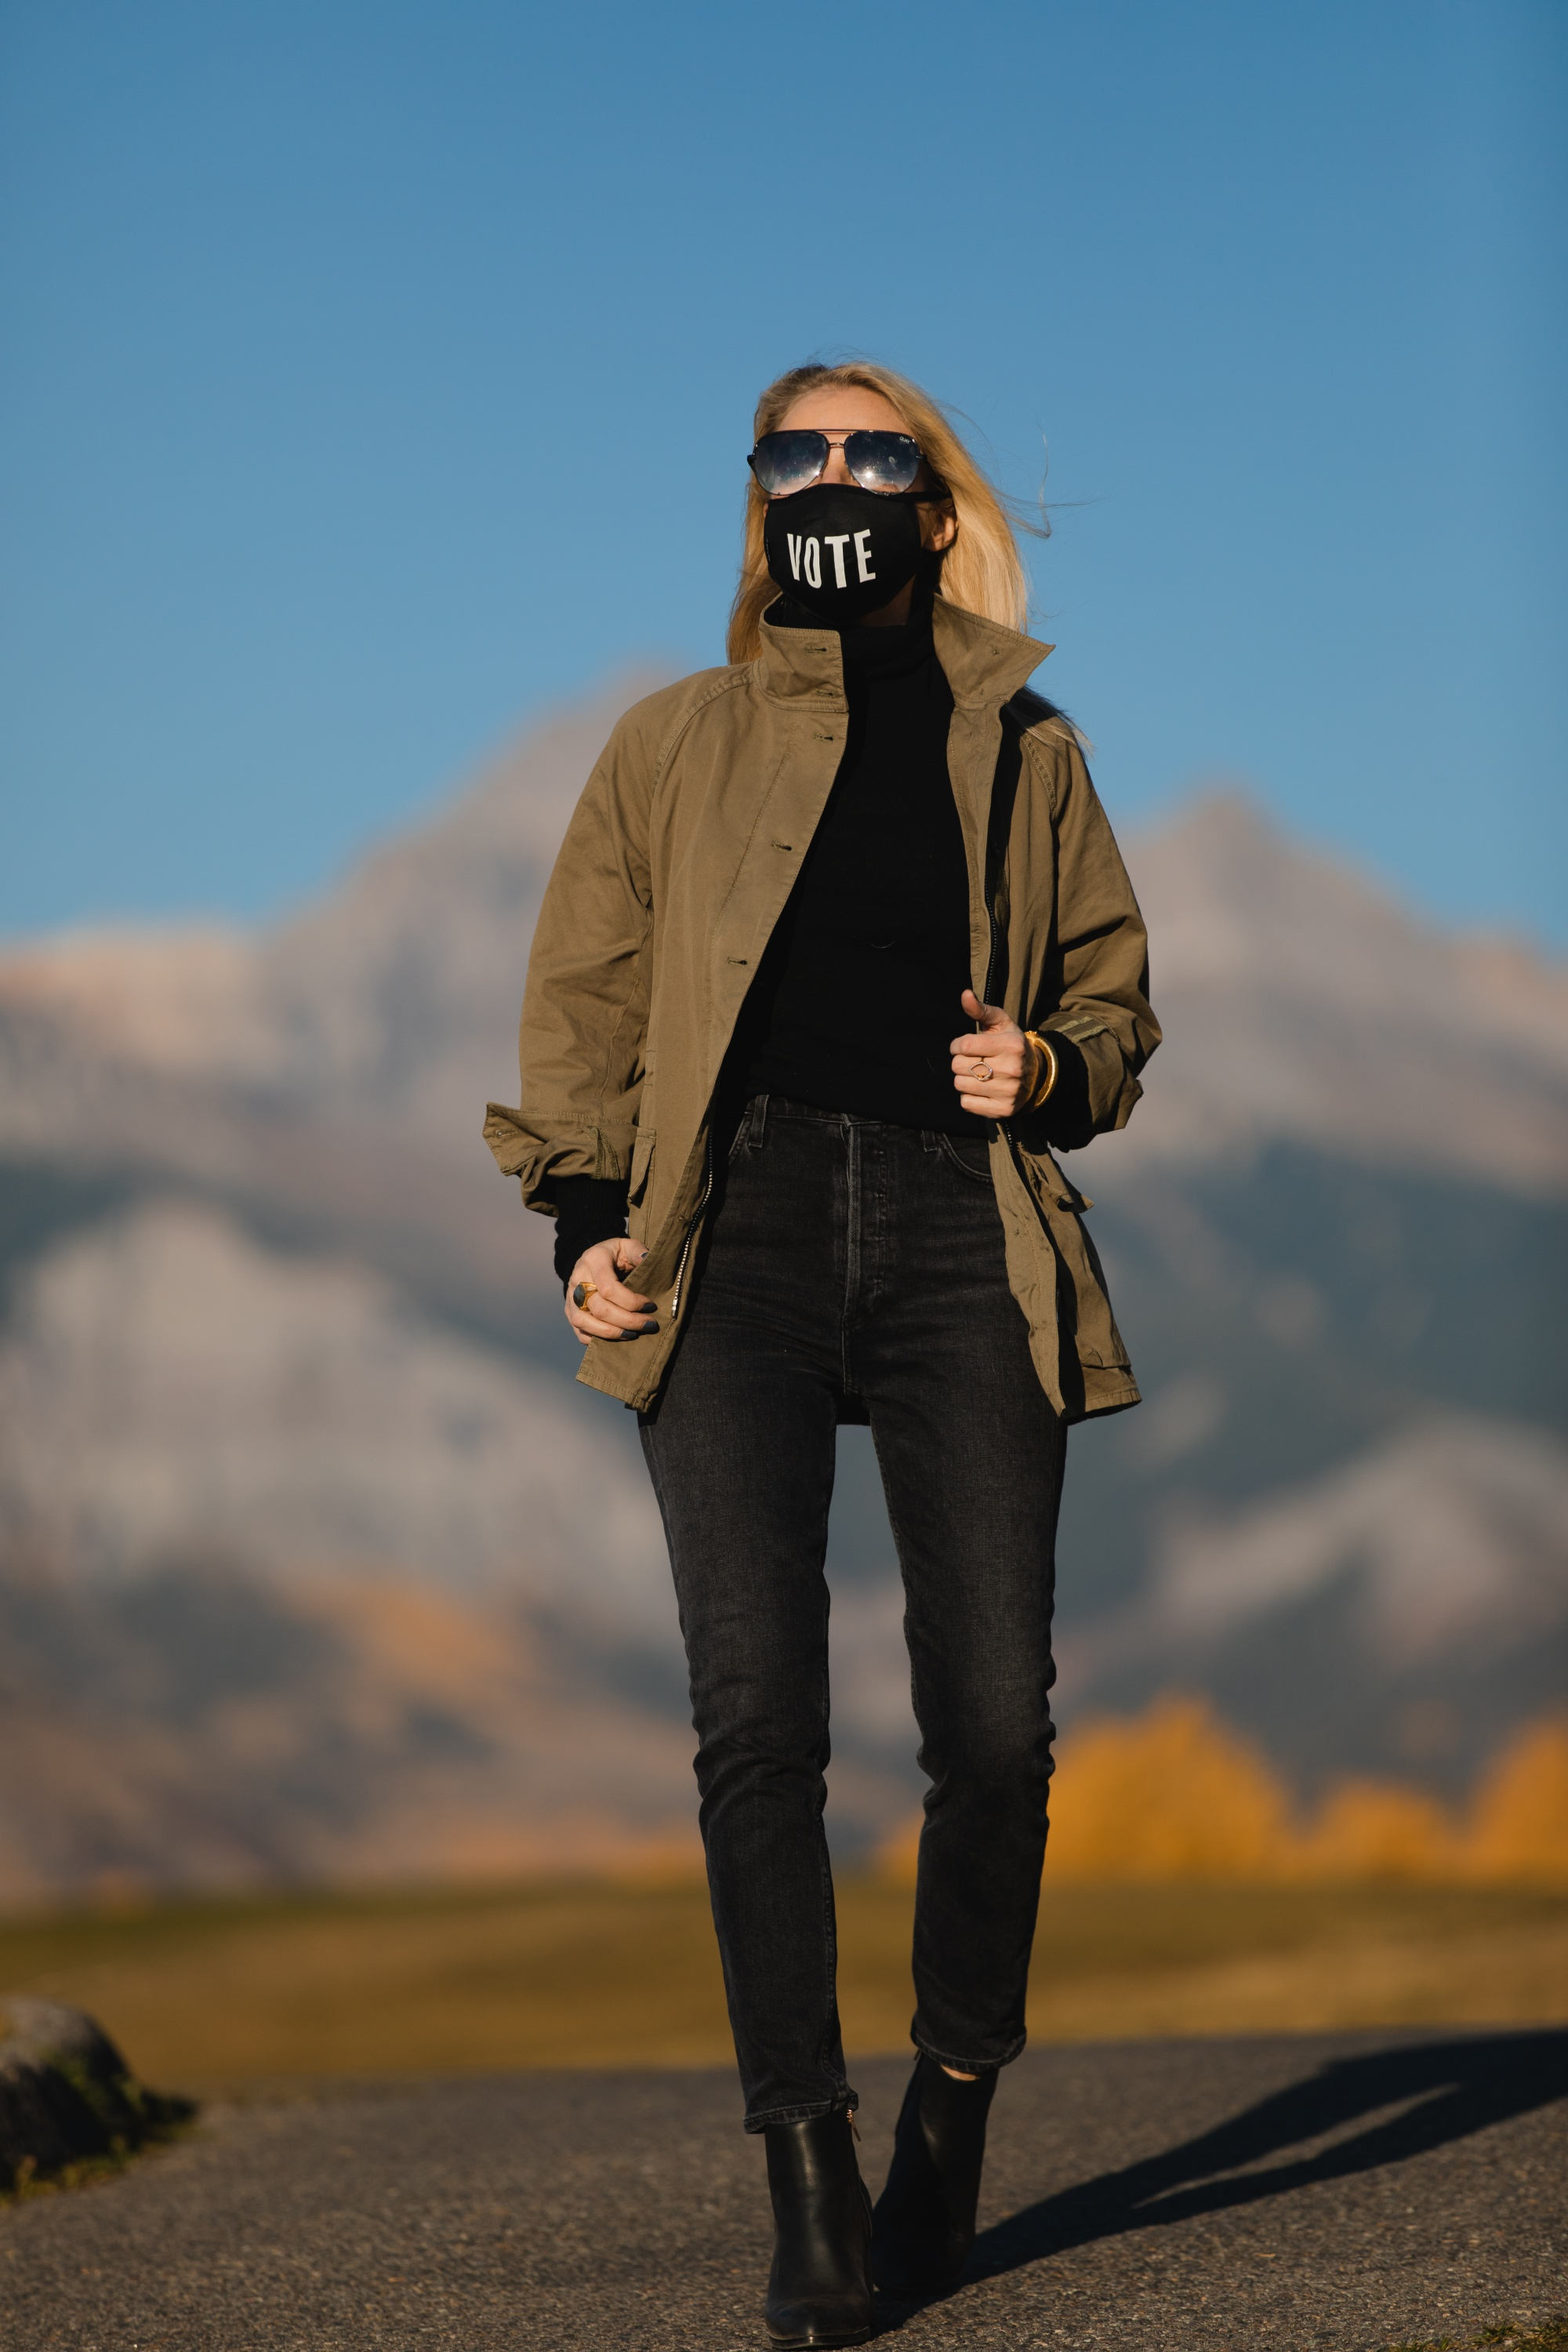 How To Wear A Cargo Jacket, Erin Busbee of Busbee Style wearing a green cargo jacket by rag & bone, black turtleneck puff sleeve cashmere sweater by Aqua, gray wash Nico slim fit jeans by Agolde, QUAY sunglasses, Vote mask, and Alexander Wang cutout booties from Bloomingdale's in Telluride, Colorado